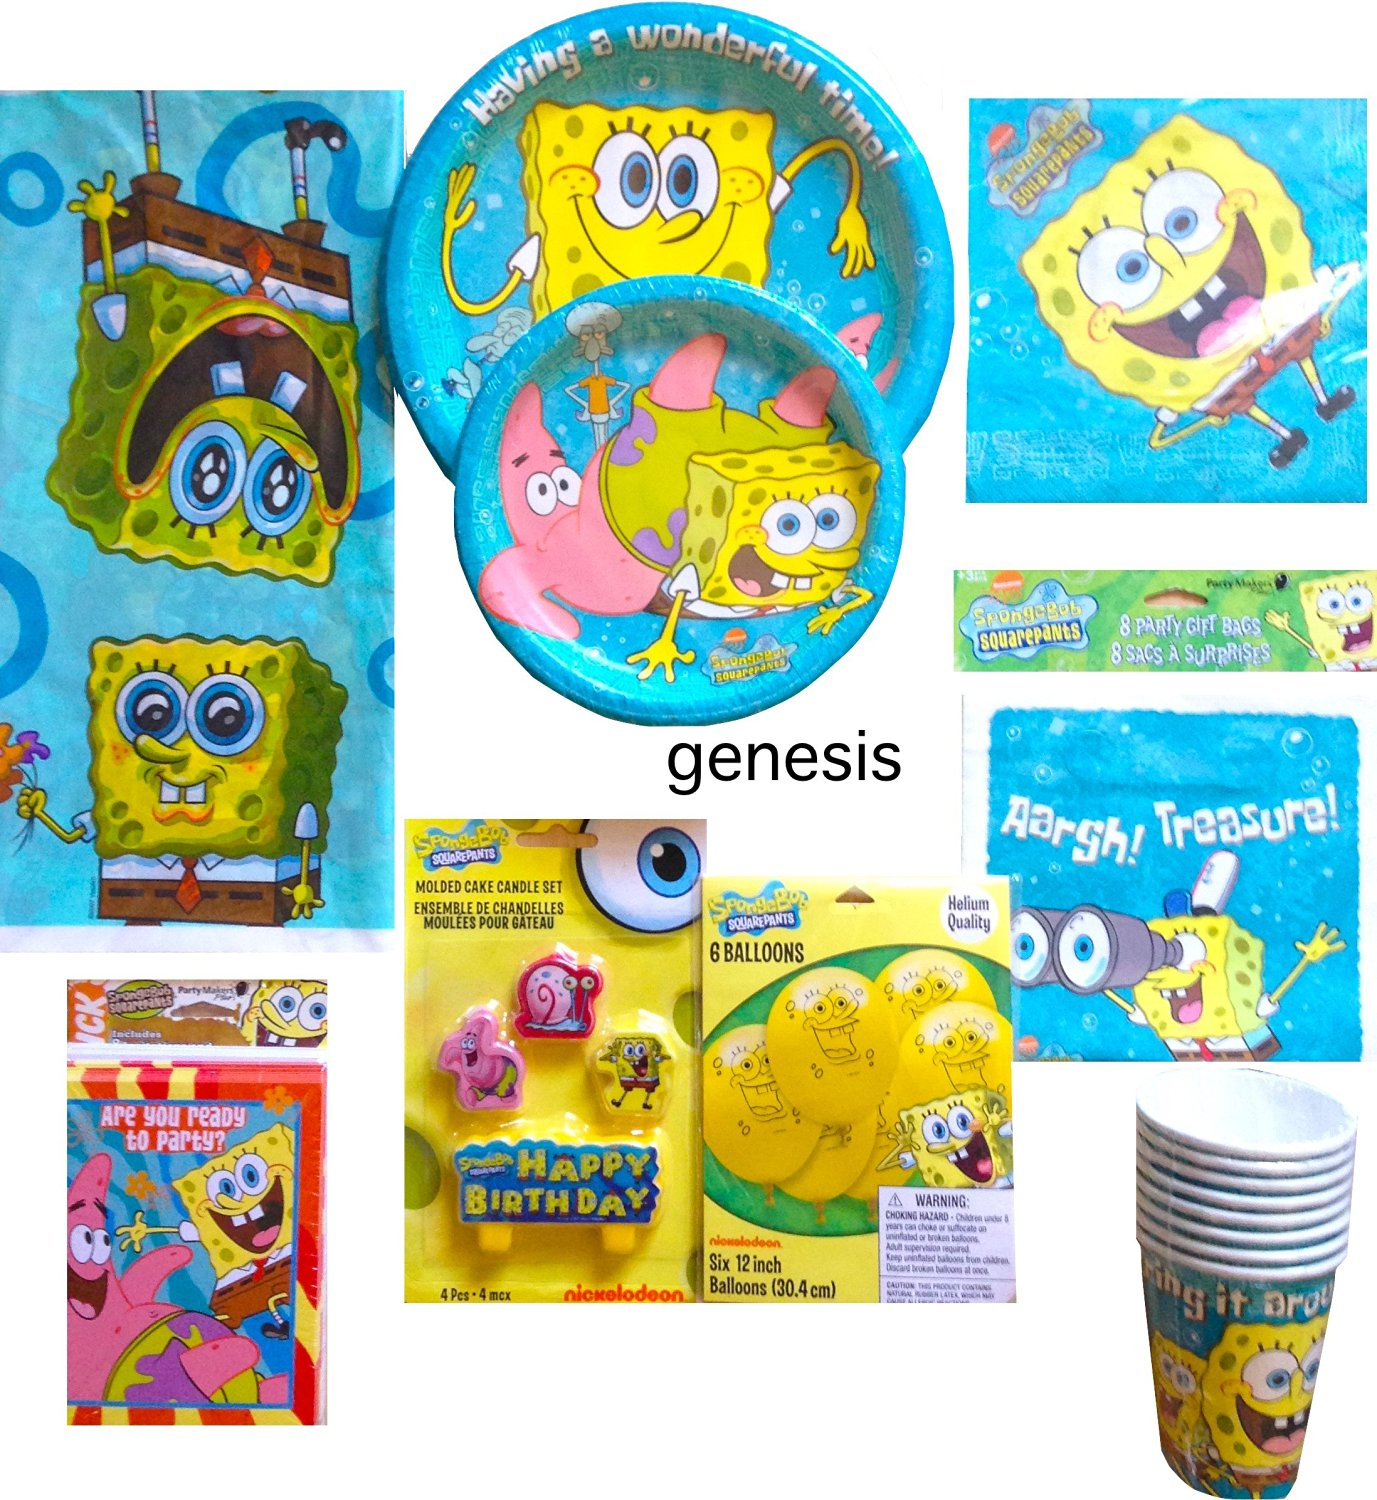 Spongebob Squarepants Children's Ultimate Birthday Supplies Includes Lunch & Dessert Plates, Napkins, Gift bags, Balloons, Candle Set, Invitations, Tablecover, Party Cups (Party For 8)